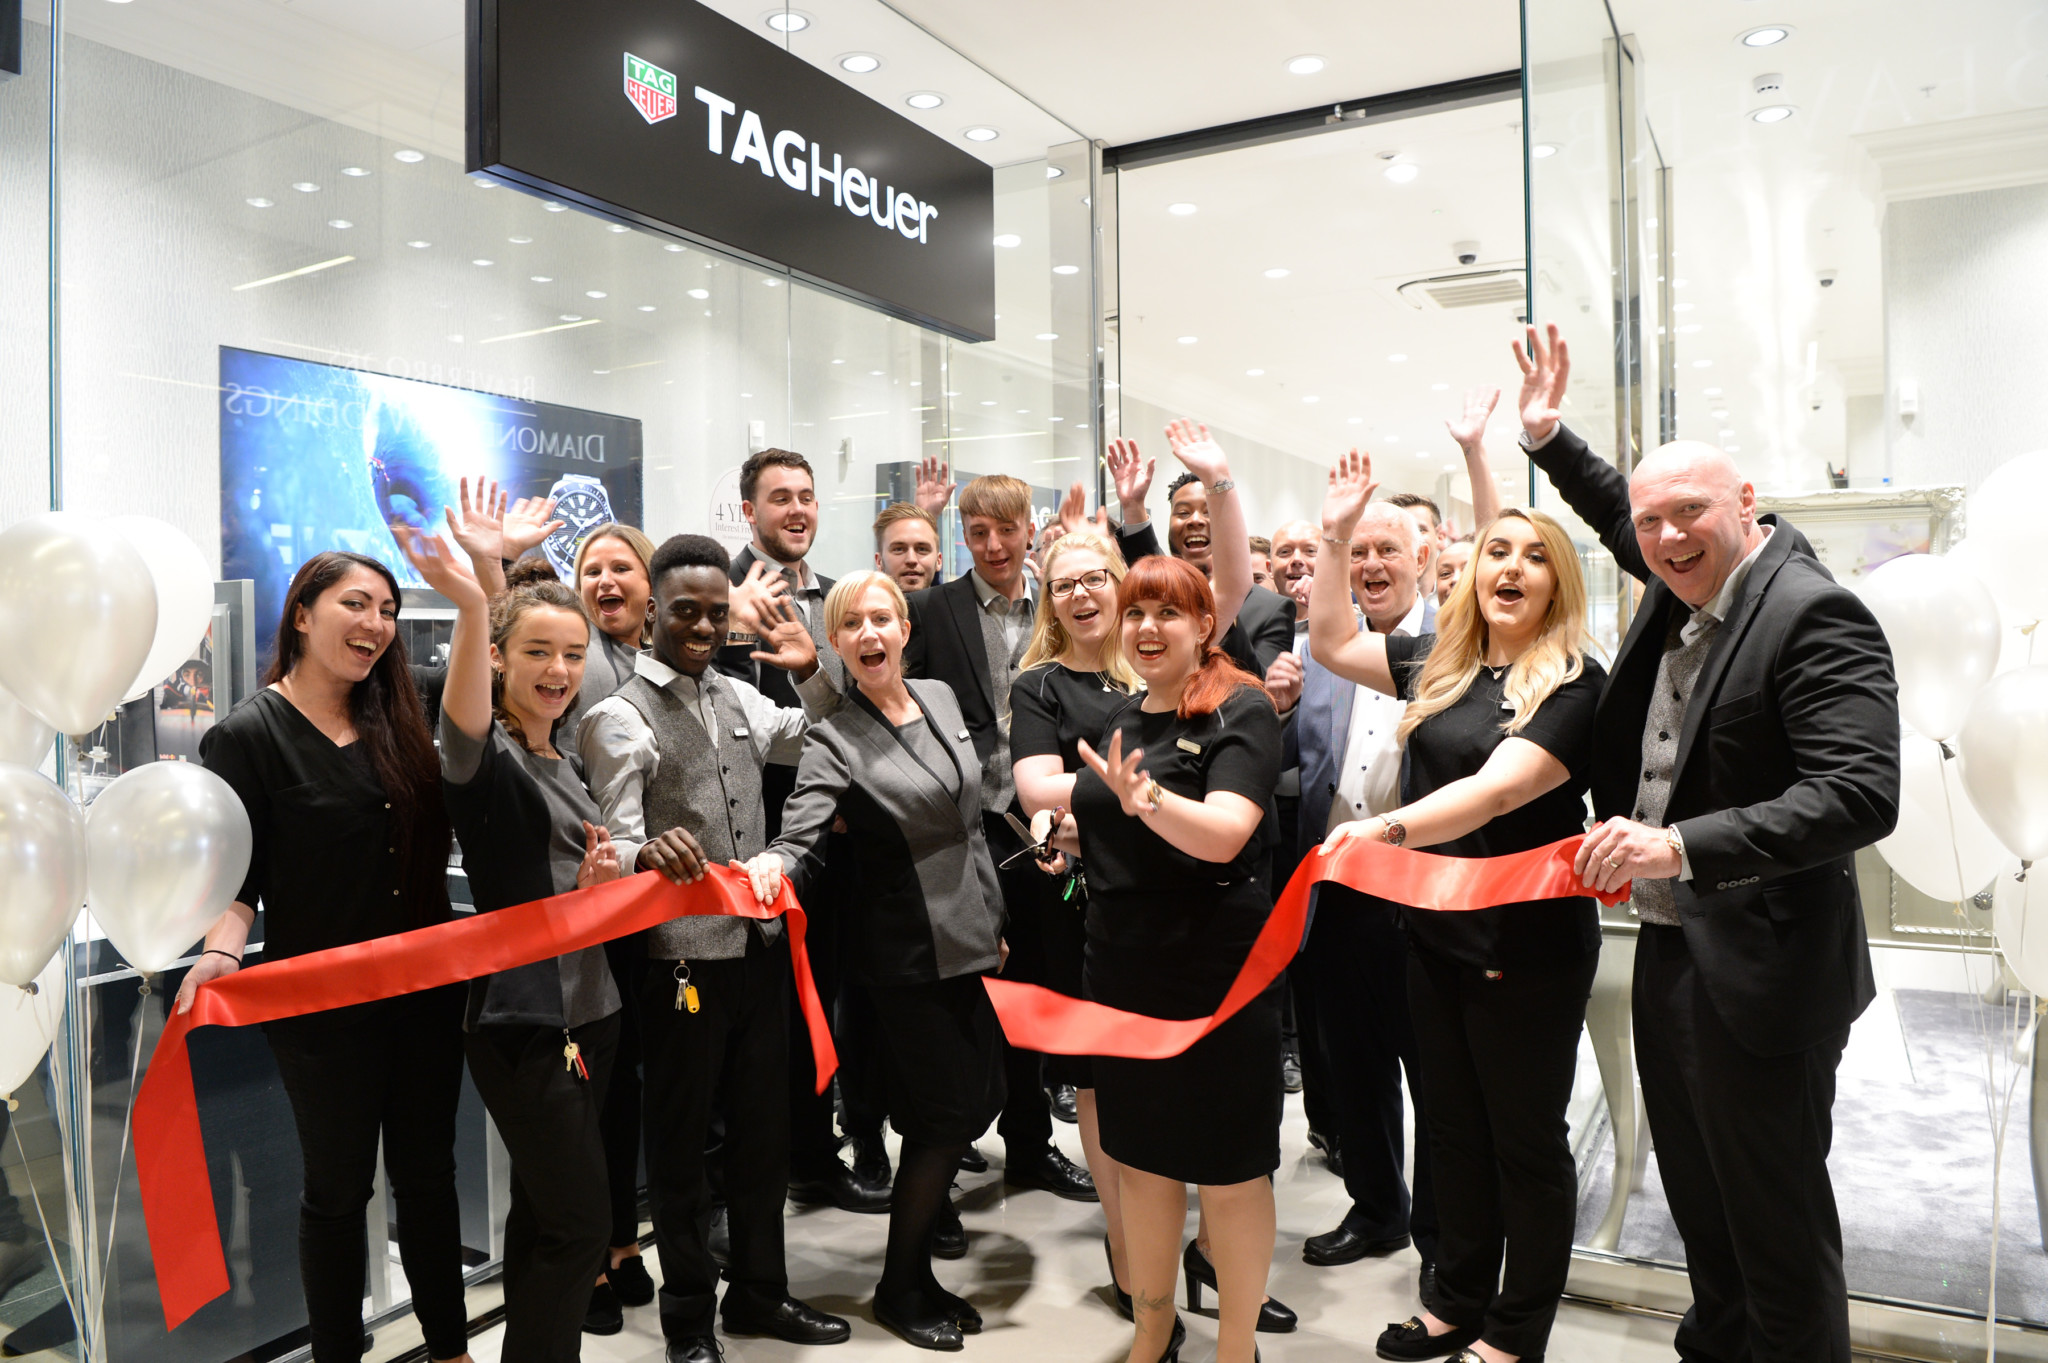 Beaverbrooks celebrates its 71st opening in The Friary Shopping centre, Guildford